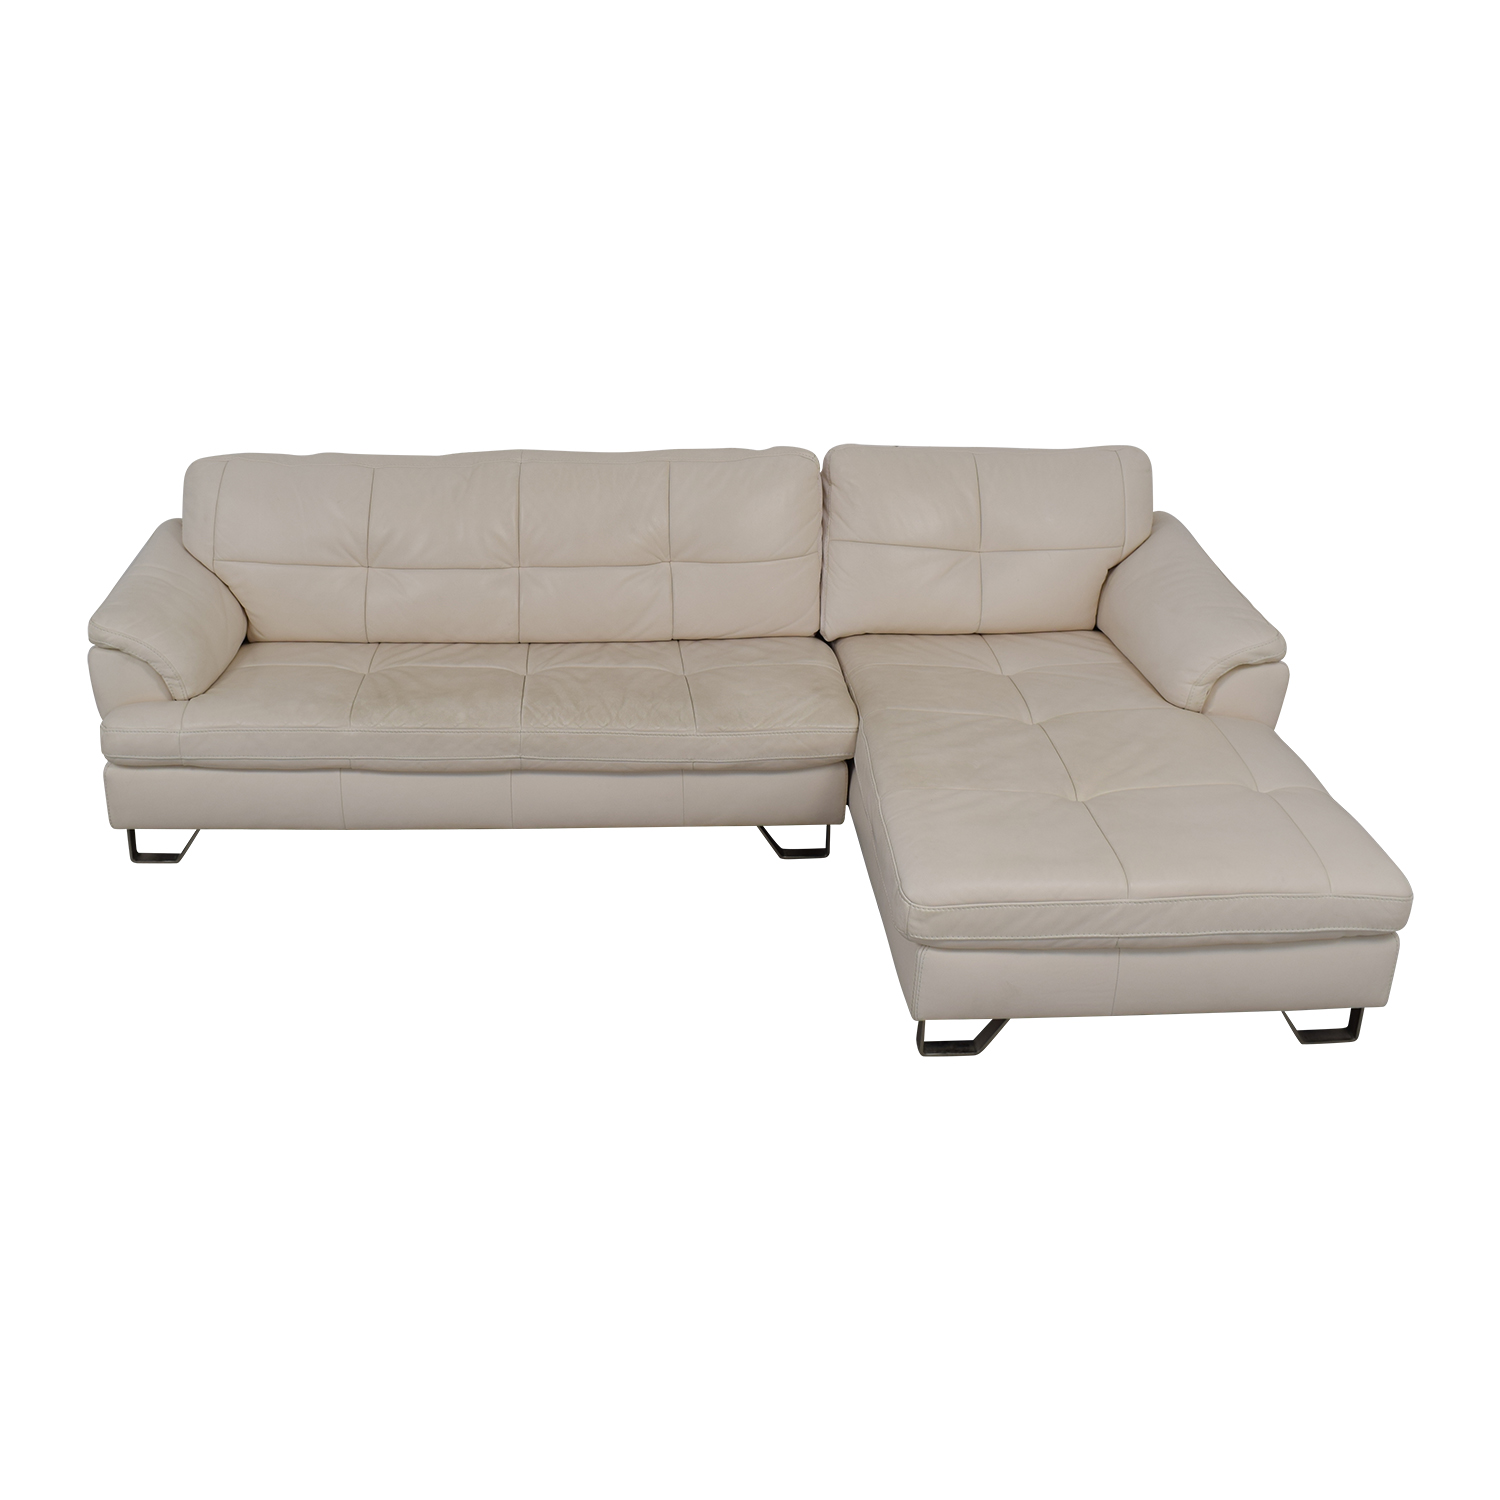 Ashley Furniture White Leather Chaise Sectional / Sofas